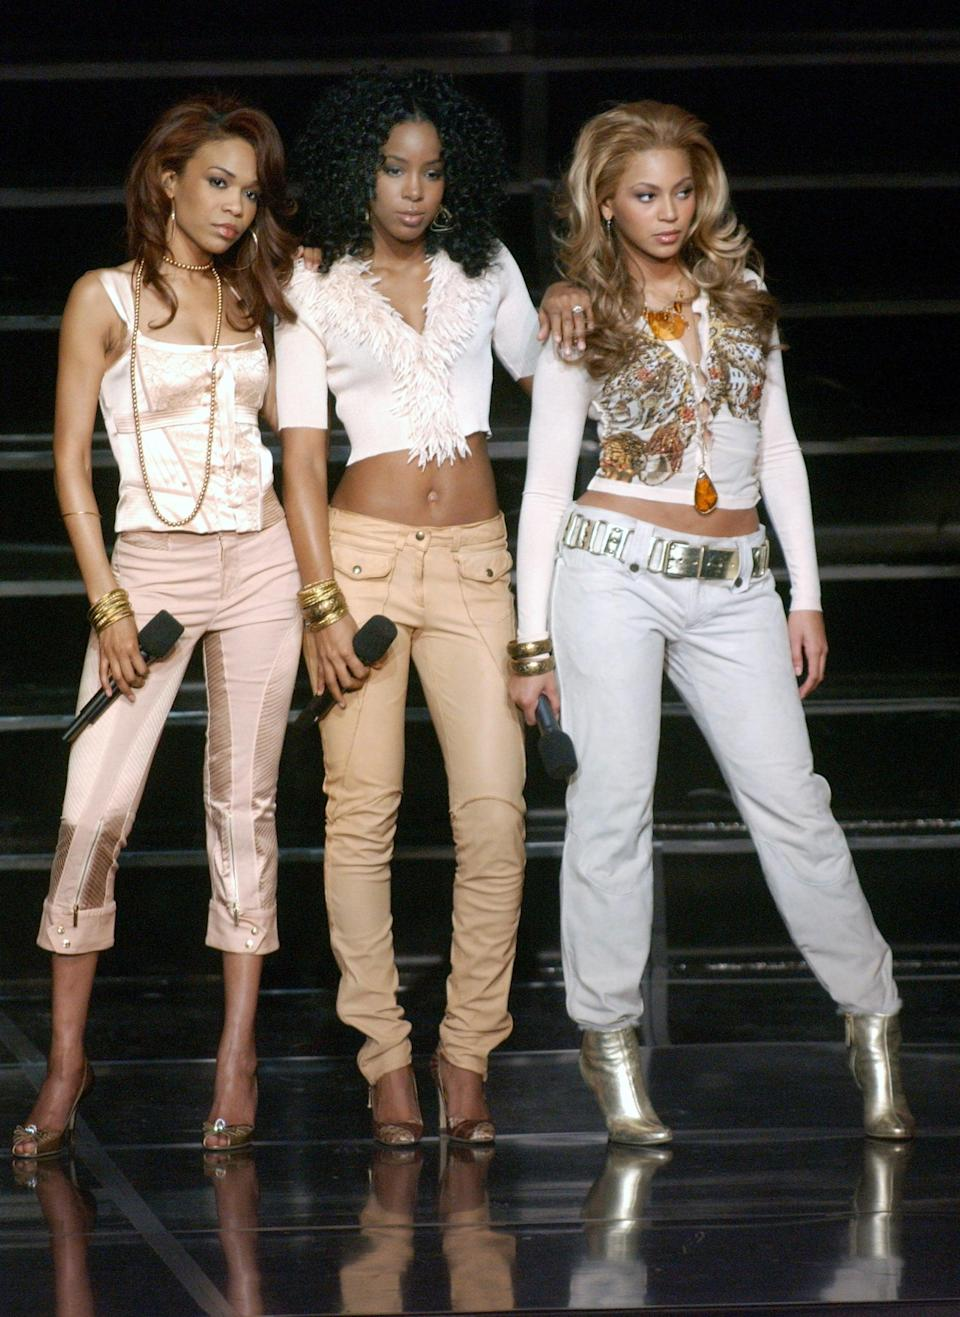 <p>At <strong>Good Morning America</strong>'s Women Rule Concert in 2004 wearing crop tops and low-slung pants. </p>